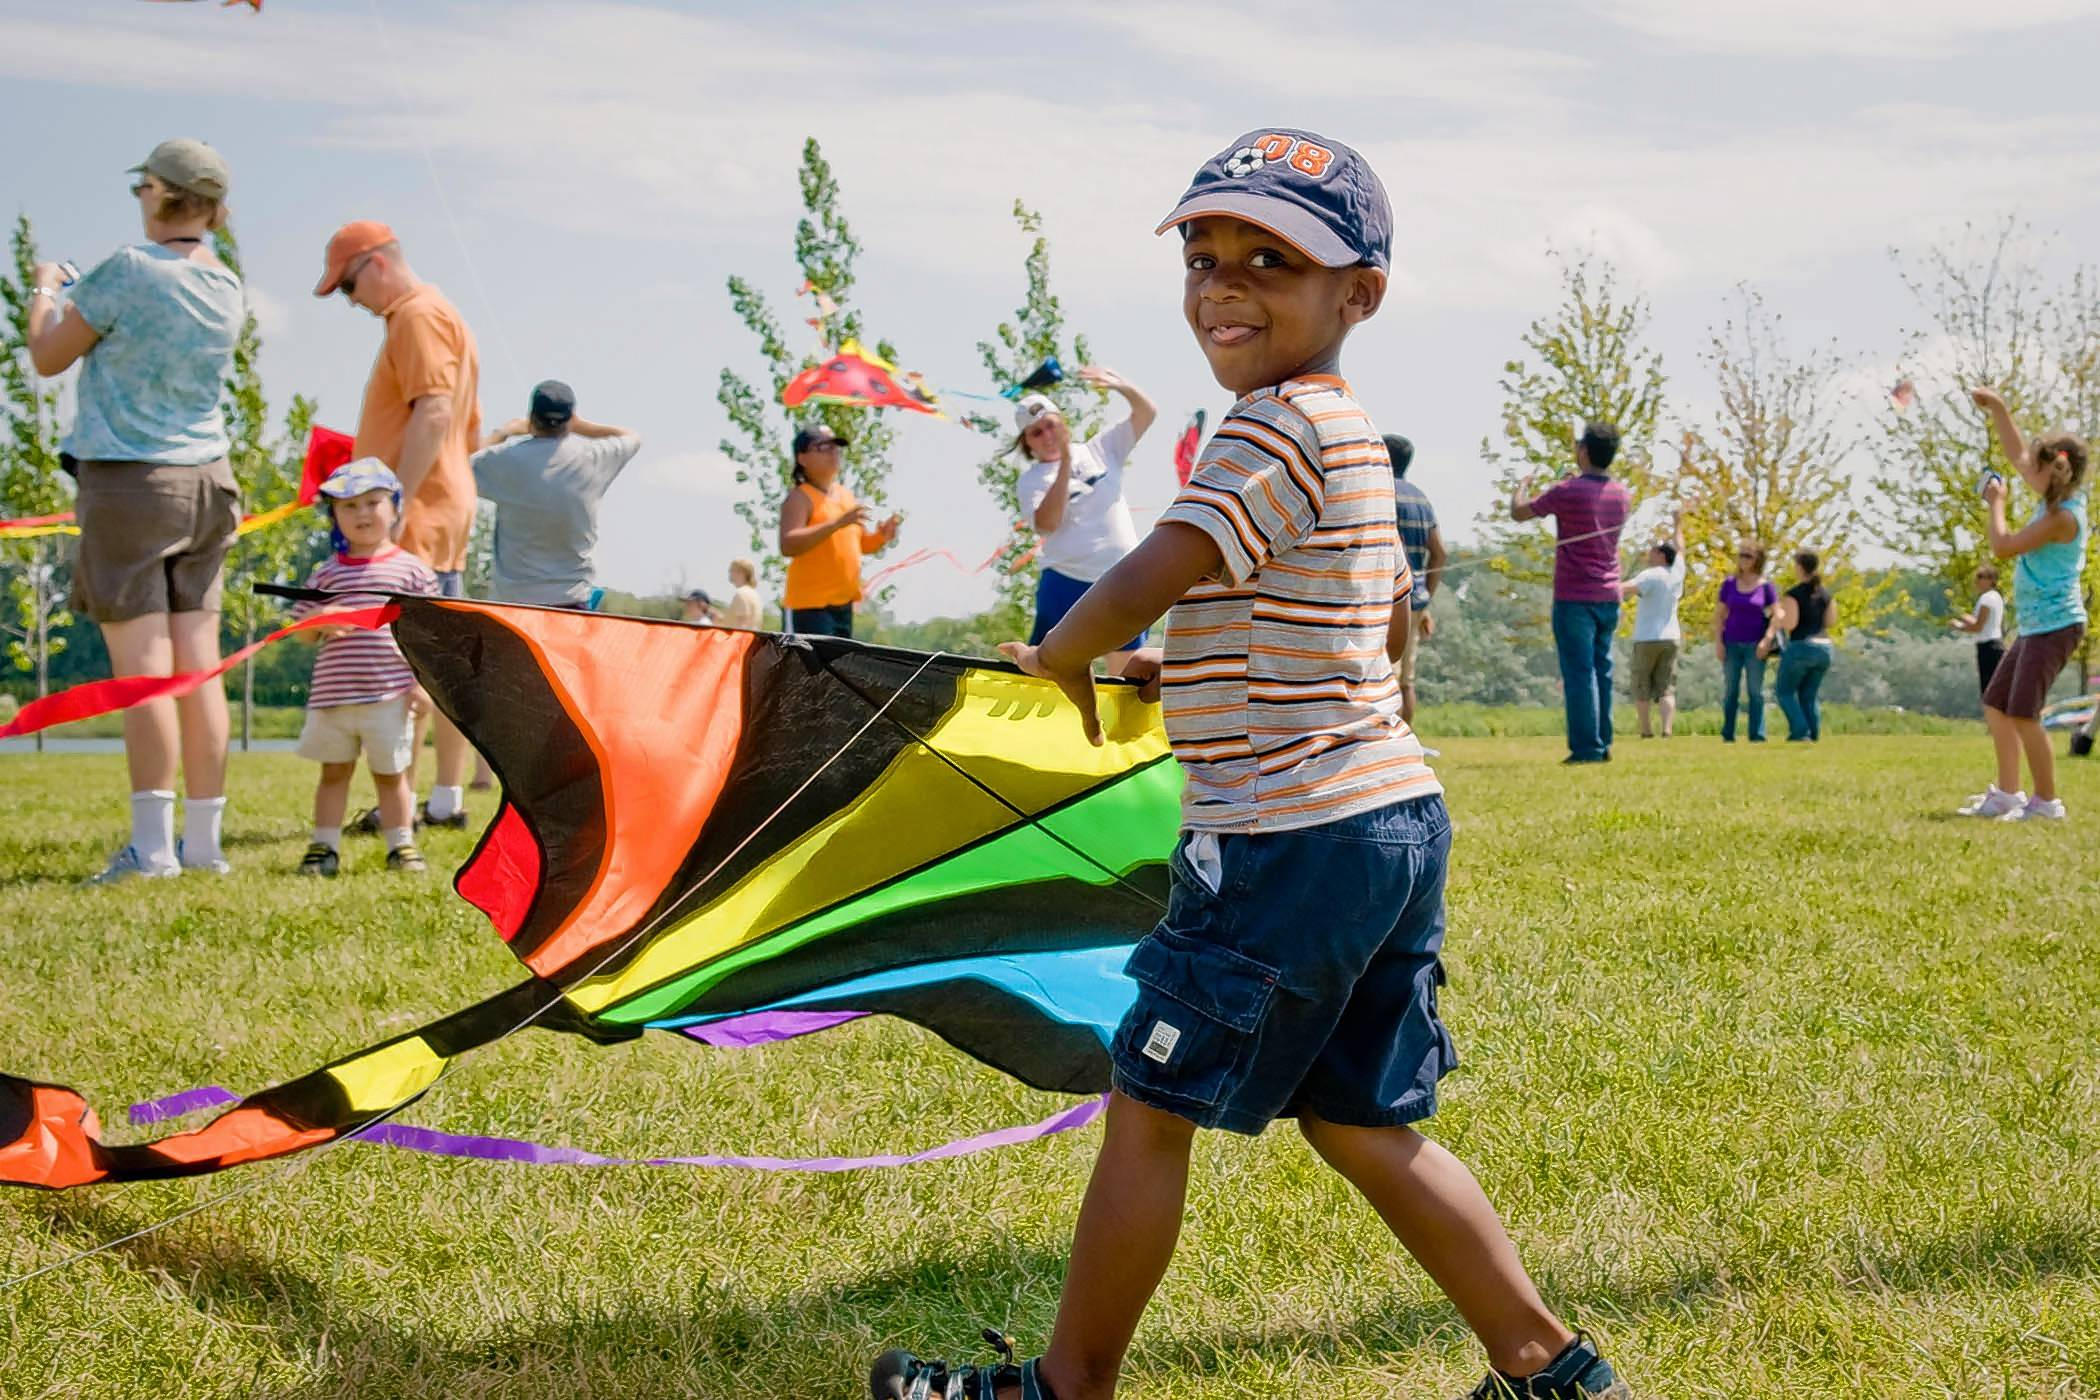 The Chicago Botanic Garden holds a Kite Festival Sunday, Aug. 13.